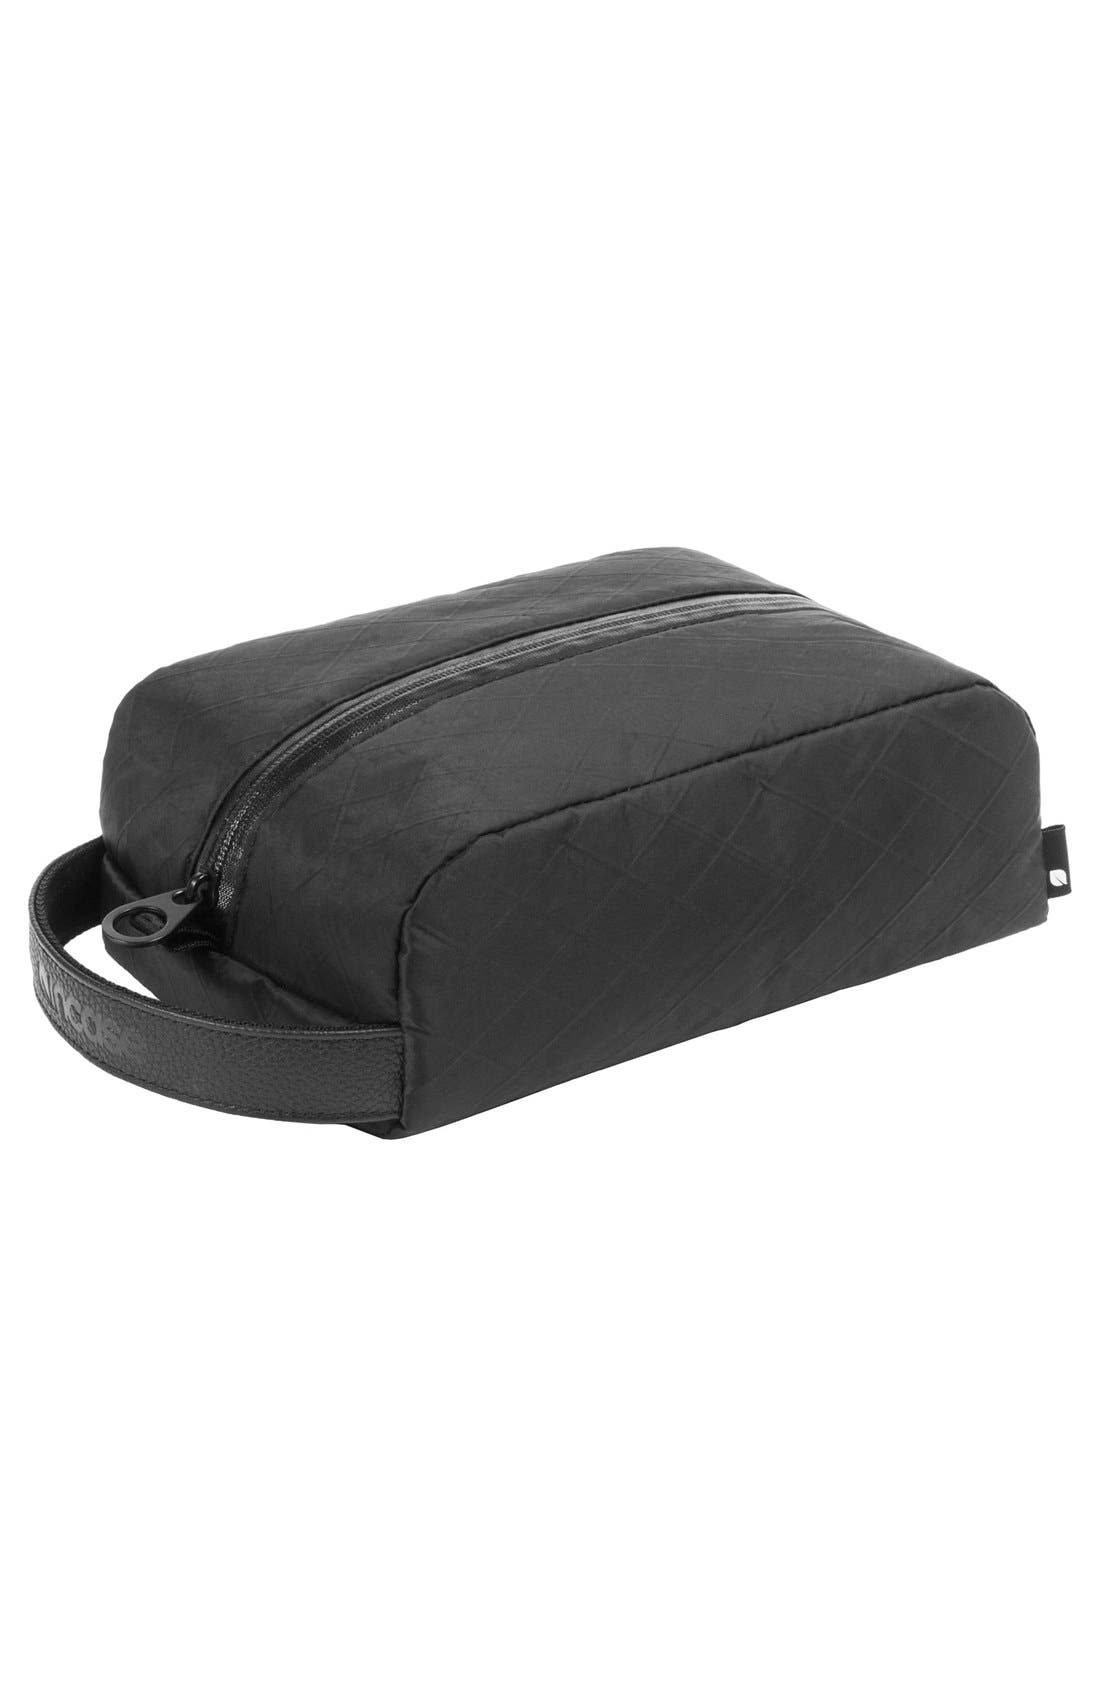 Diamond Wire Dopp Kit,                             Alternate thumbnail 6, color,                             Black